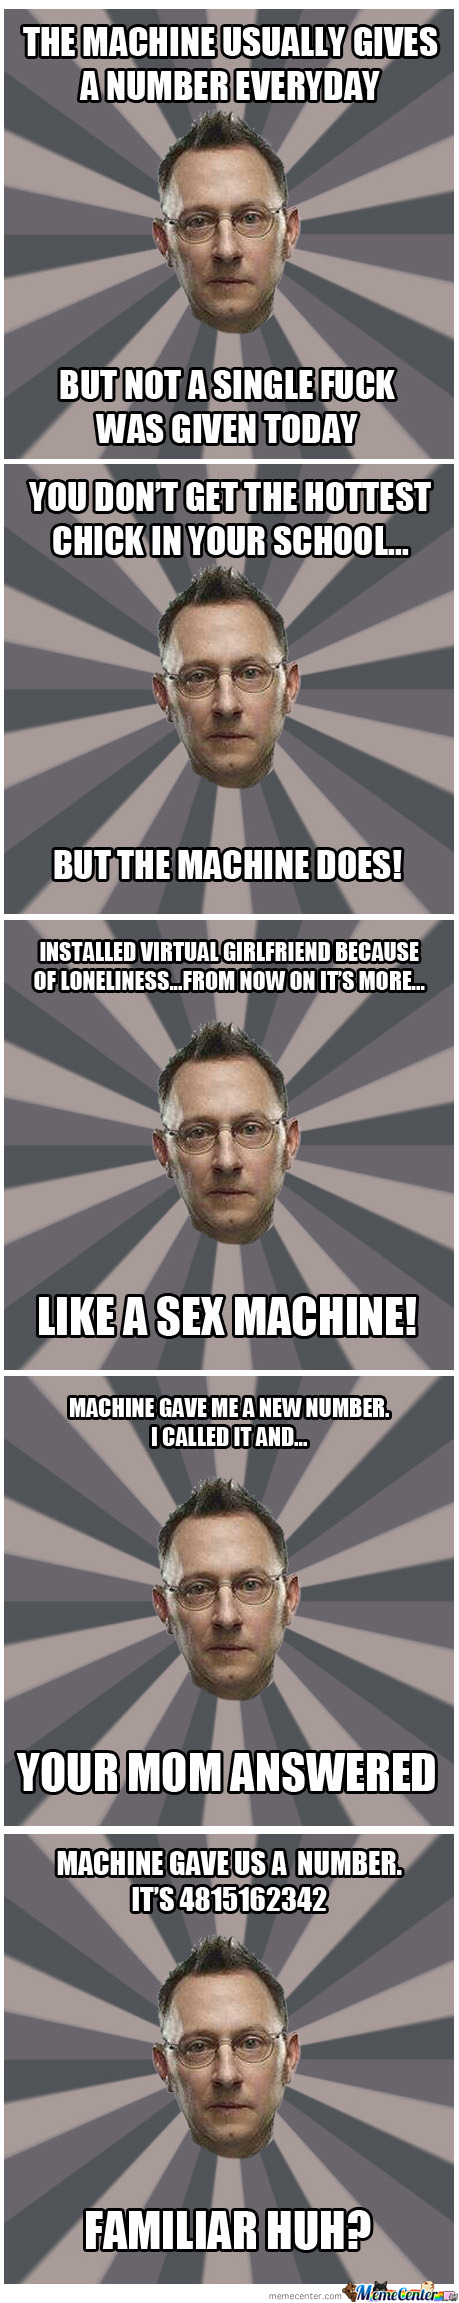 The Machine - Person of Interest Memes